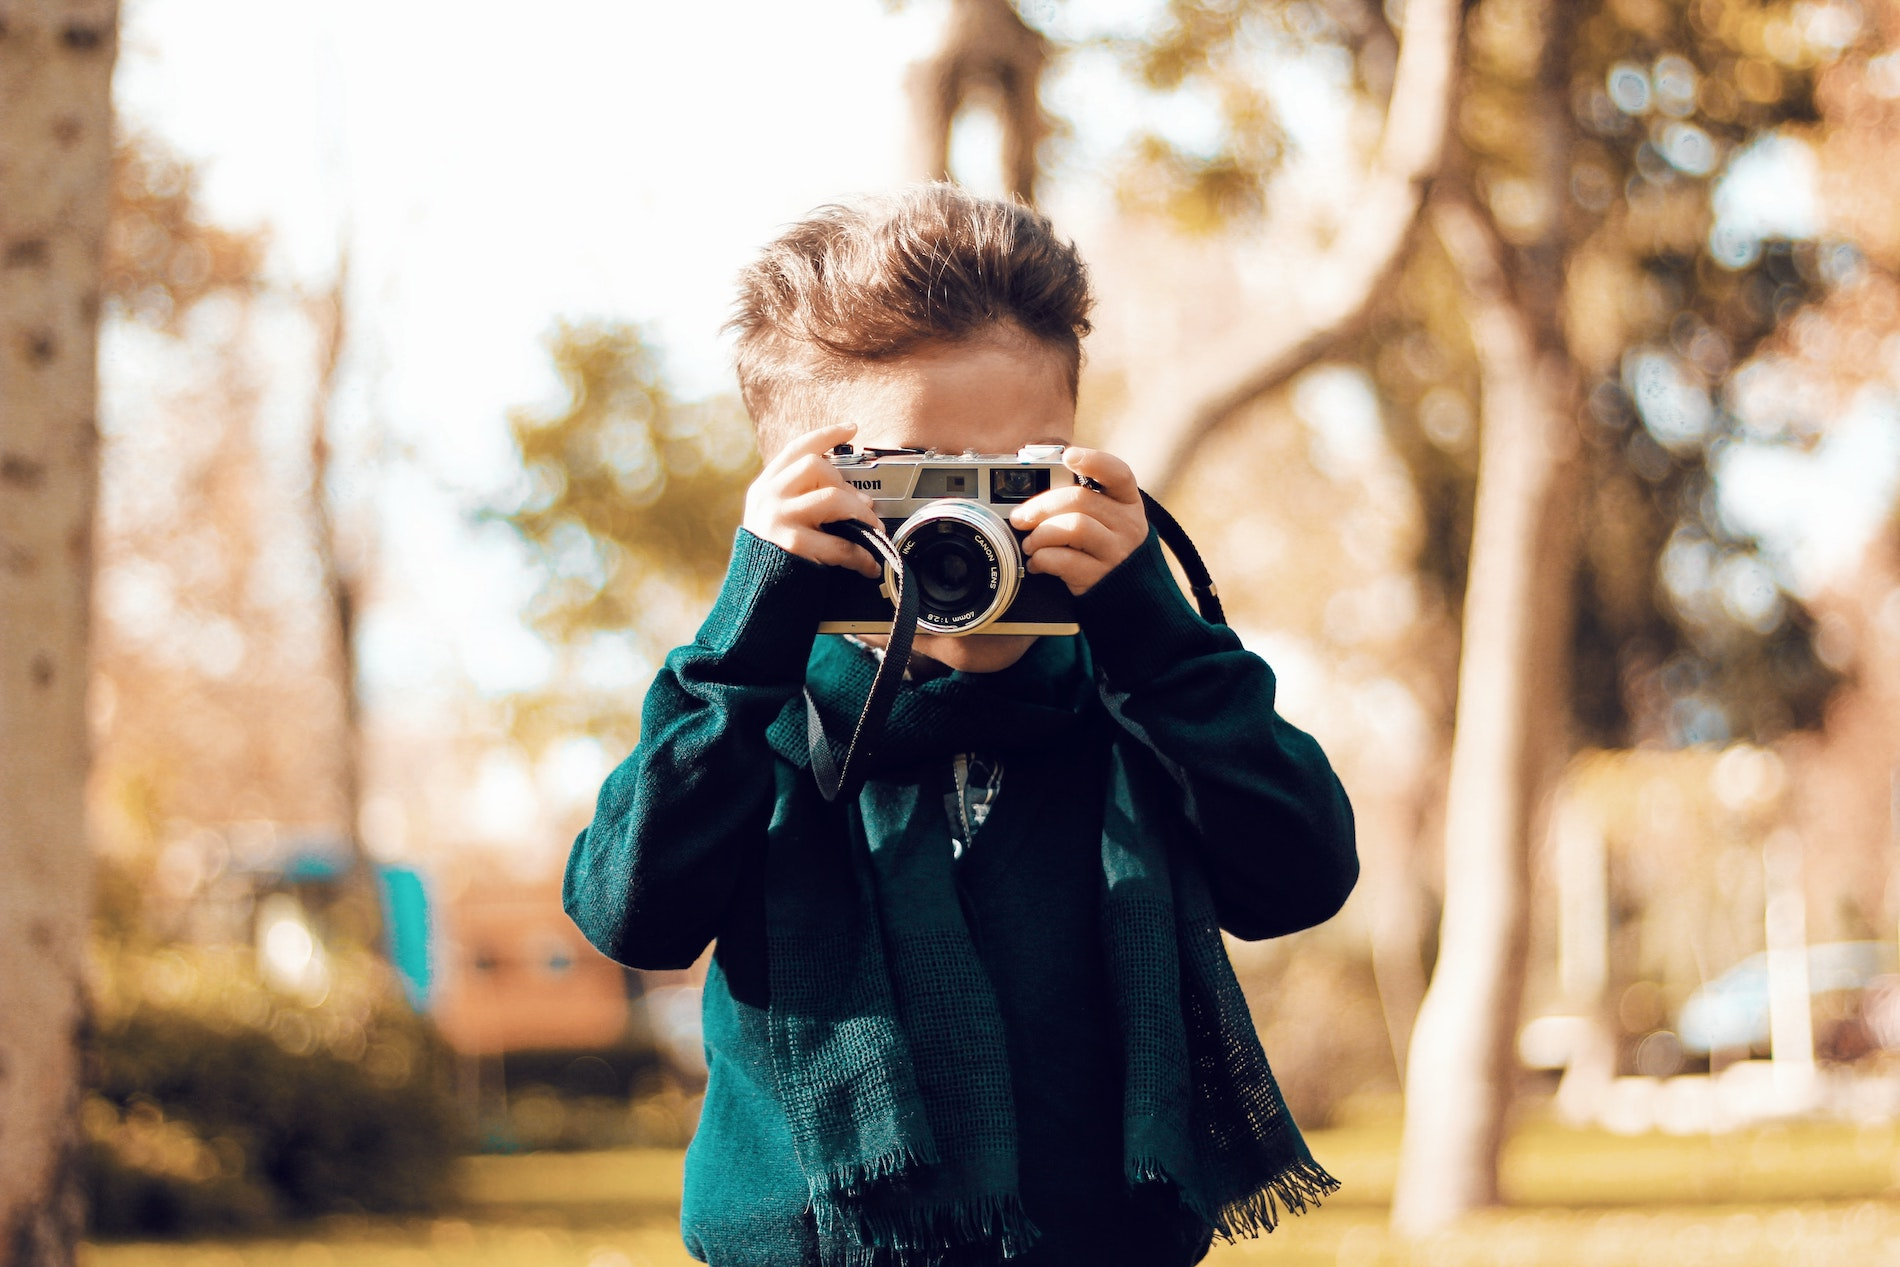 A young kid taking a photo